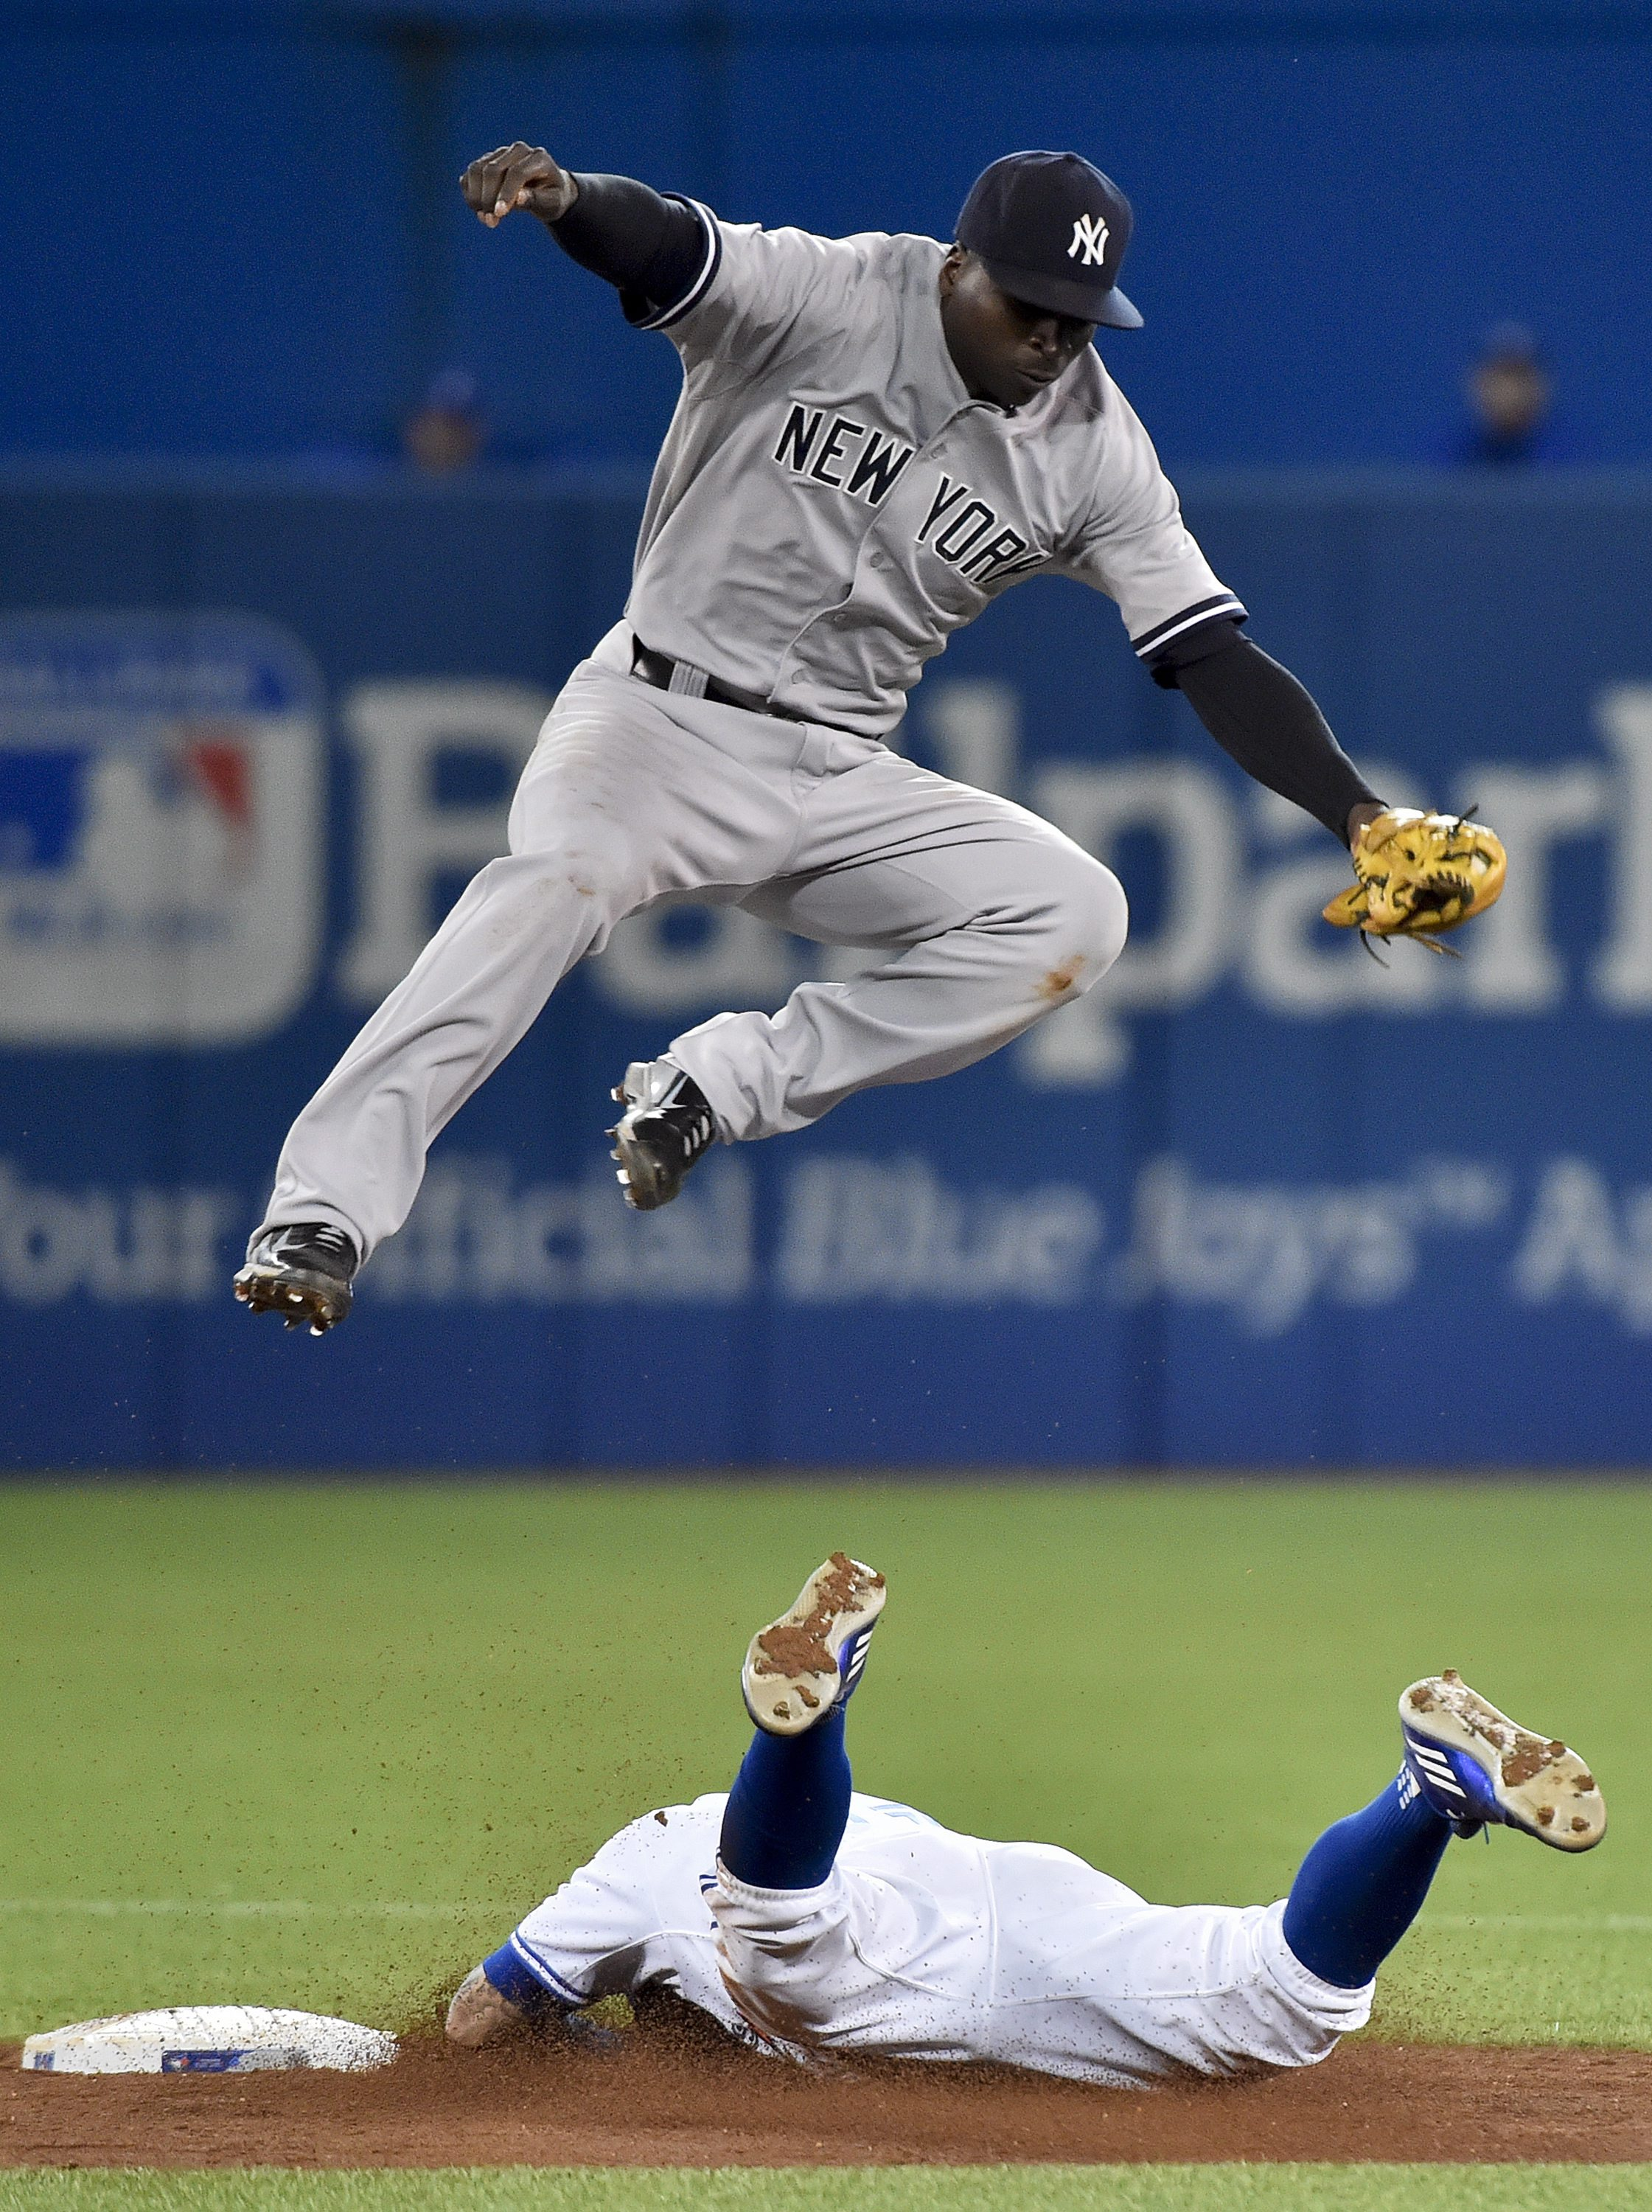 Toronto Blue Jays' Kevin Pillar, bottom, is safe after stealing second base past New York Yankees' shortstop Didi Gregorius during the fifth inning of a baseball game Tuesday, Sept. 22, 2015, in Toronto. (Nathan Denette/The Canadian Press via AP) MANDATOR